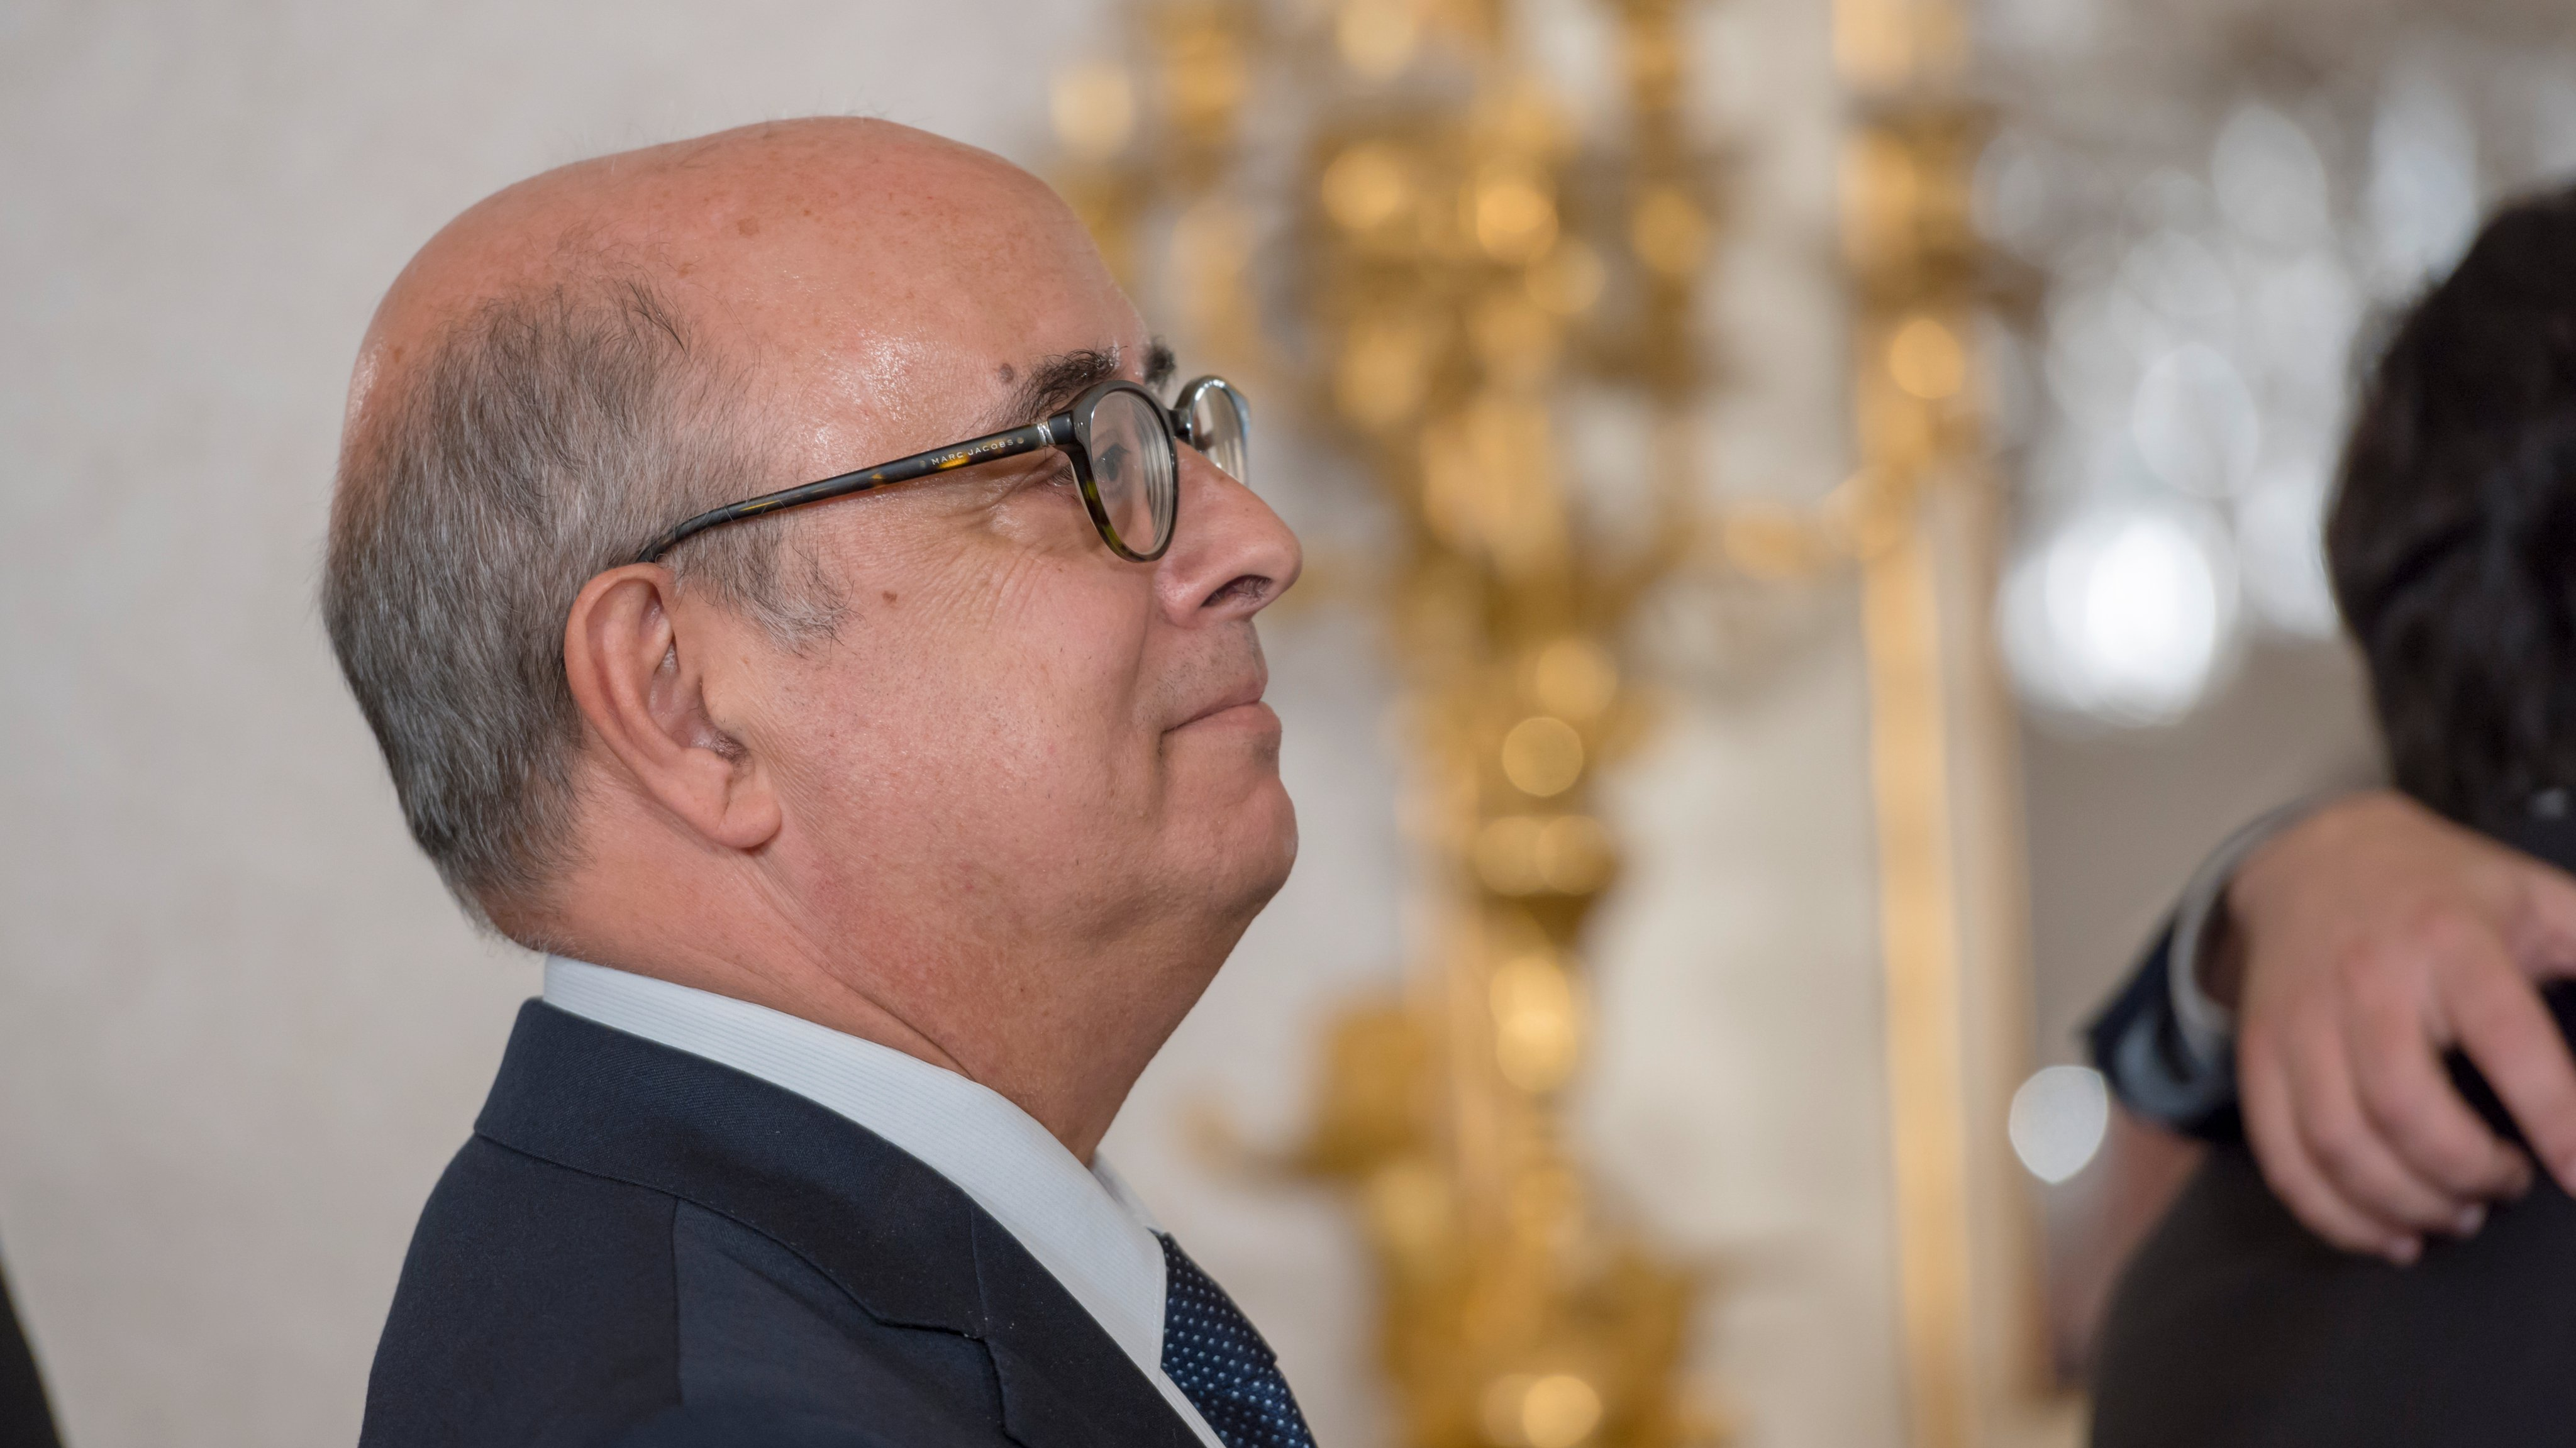 Sworn-in Ceremony Of Five New Portugal's Ministers